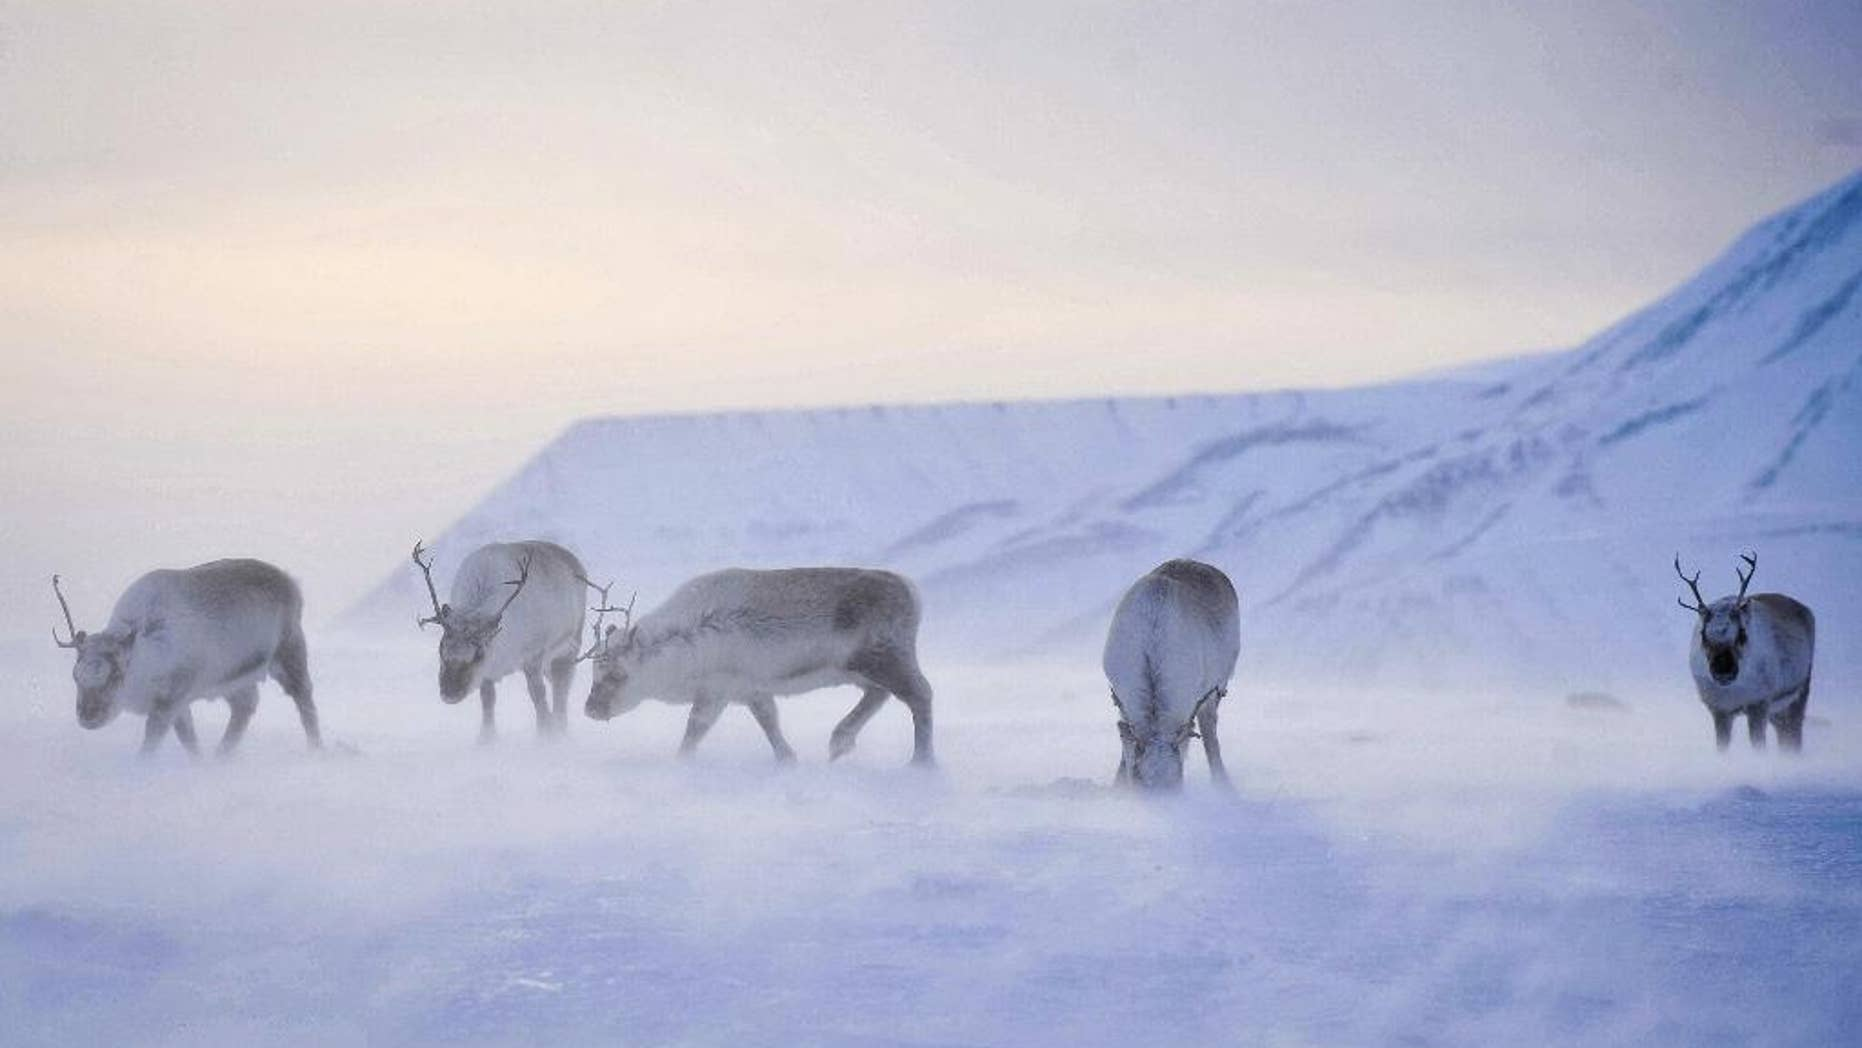 FILE _ This is a April 20, 2011 file photo of wild reindeer foraging for food on the island of Spitsbergen which is part of the Svalbard archipelago in Norway. Reindeer living on the Arctic island of Svalbard are getting smaller _ and global warming may be the cause. Scientists from Britain and Norway have found that adult Svalbard reindeer born in 2010 are now 12 percent lighter on average than those born in 1994.(Ben Birchall/PA, File via AP)